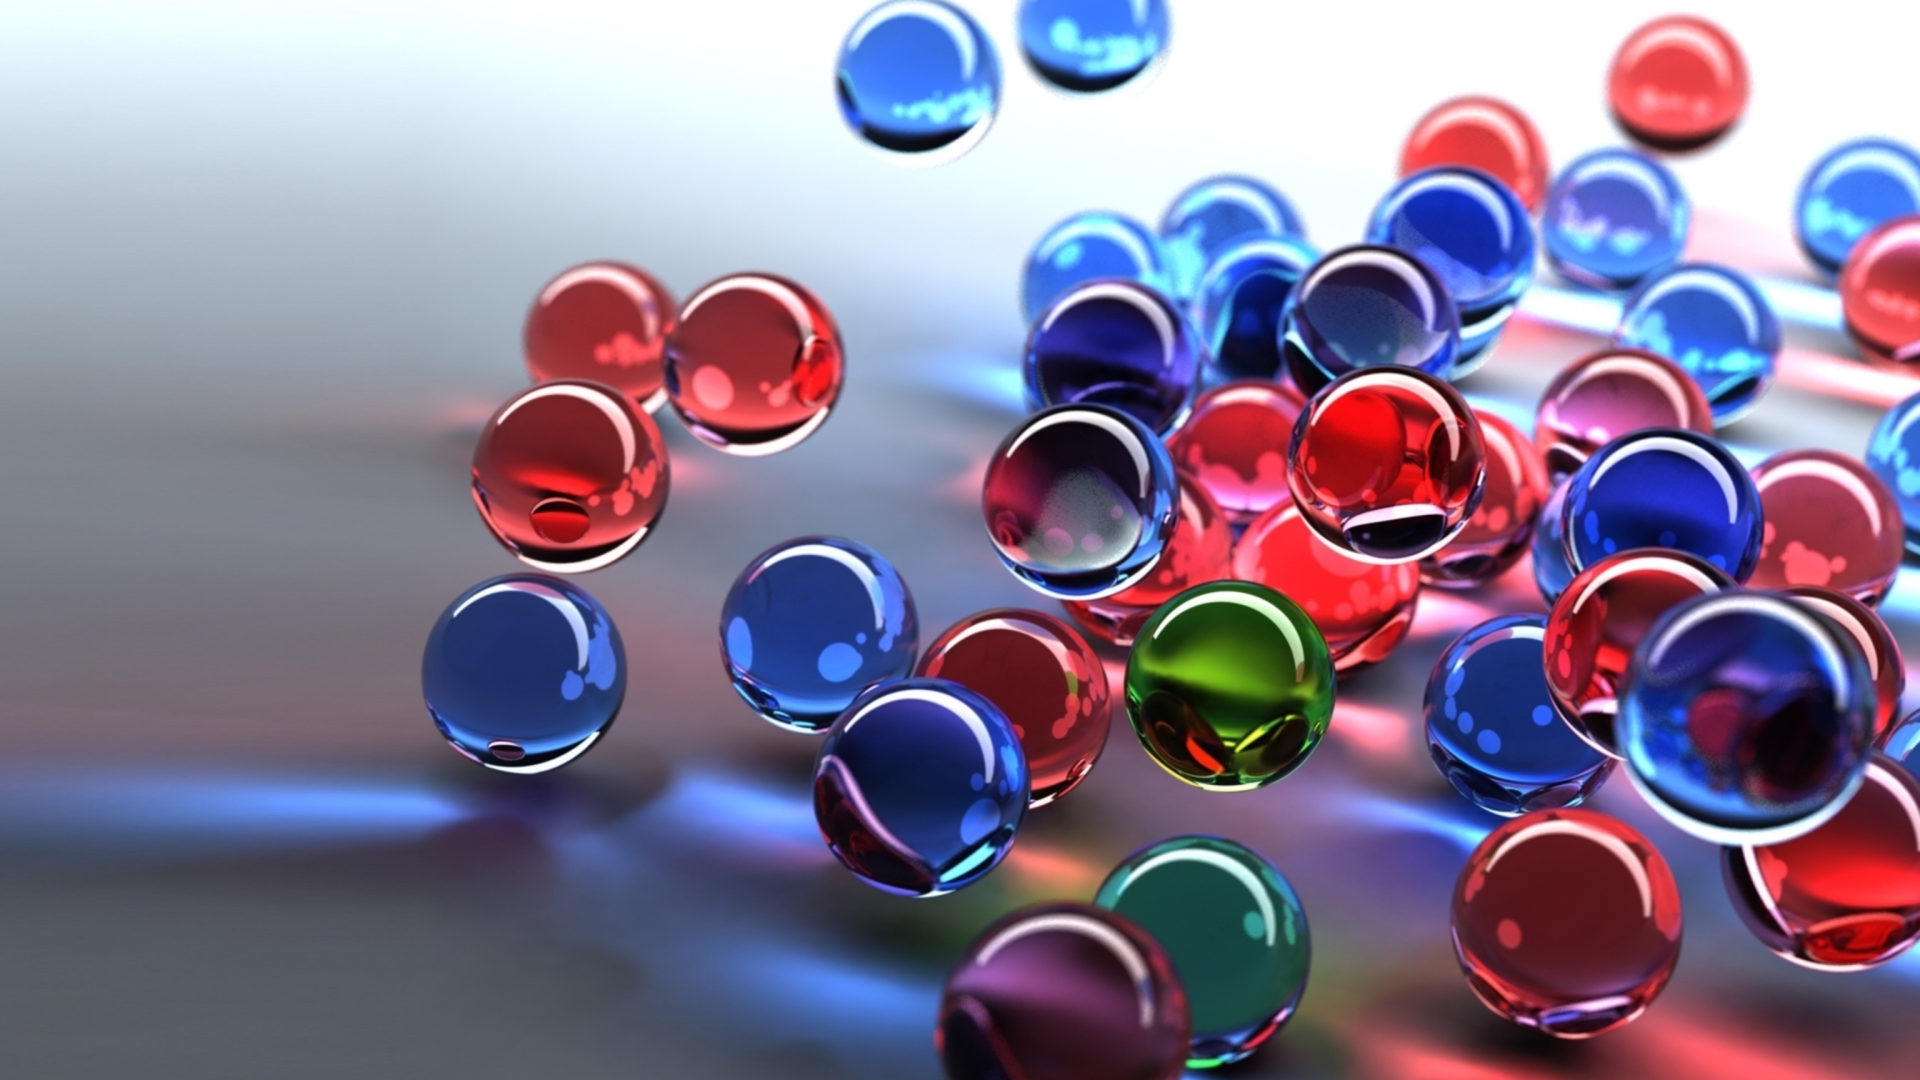 Car Wallpaper Bussines Card 3d Glass Balls Red Blue Green Hd Wallpaper 2880x1800